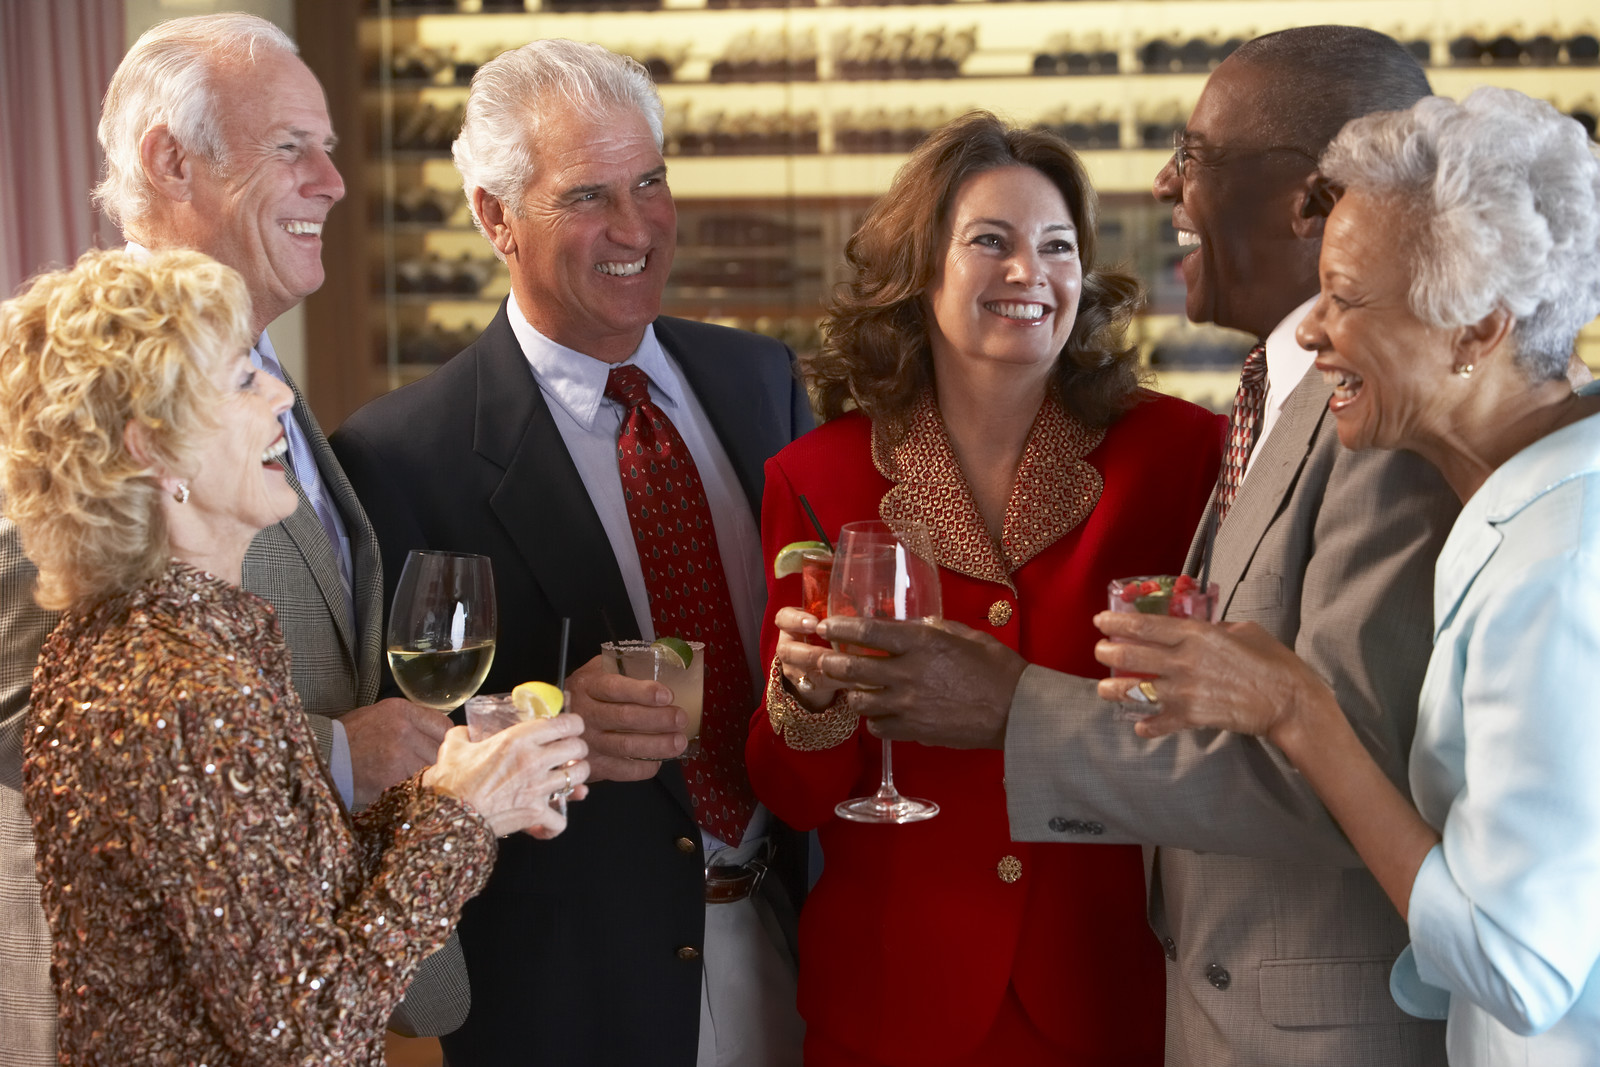 Six seniors standing in a bar holding glasses of wine talking and smiling